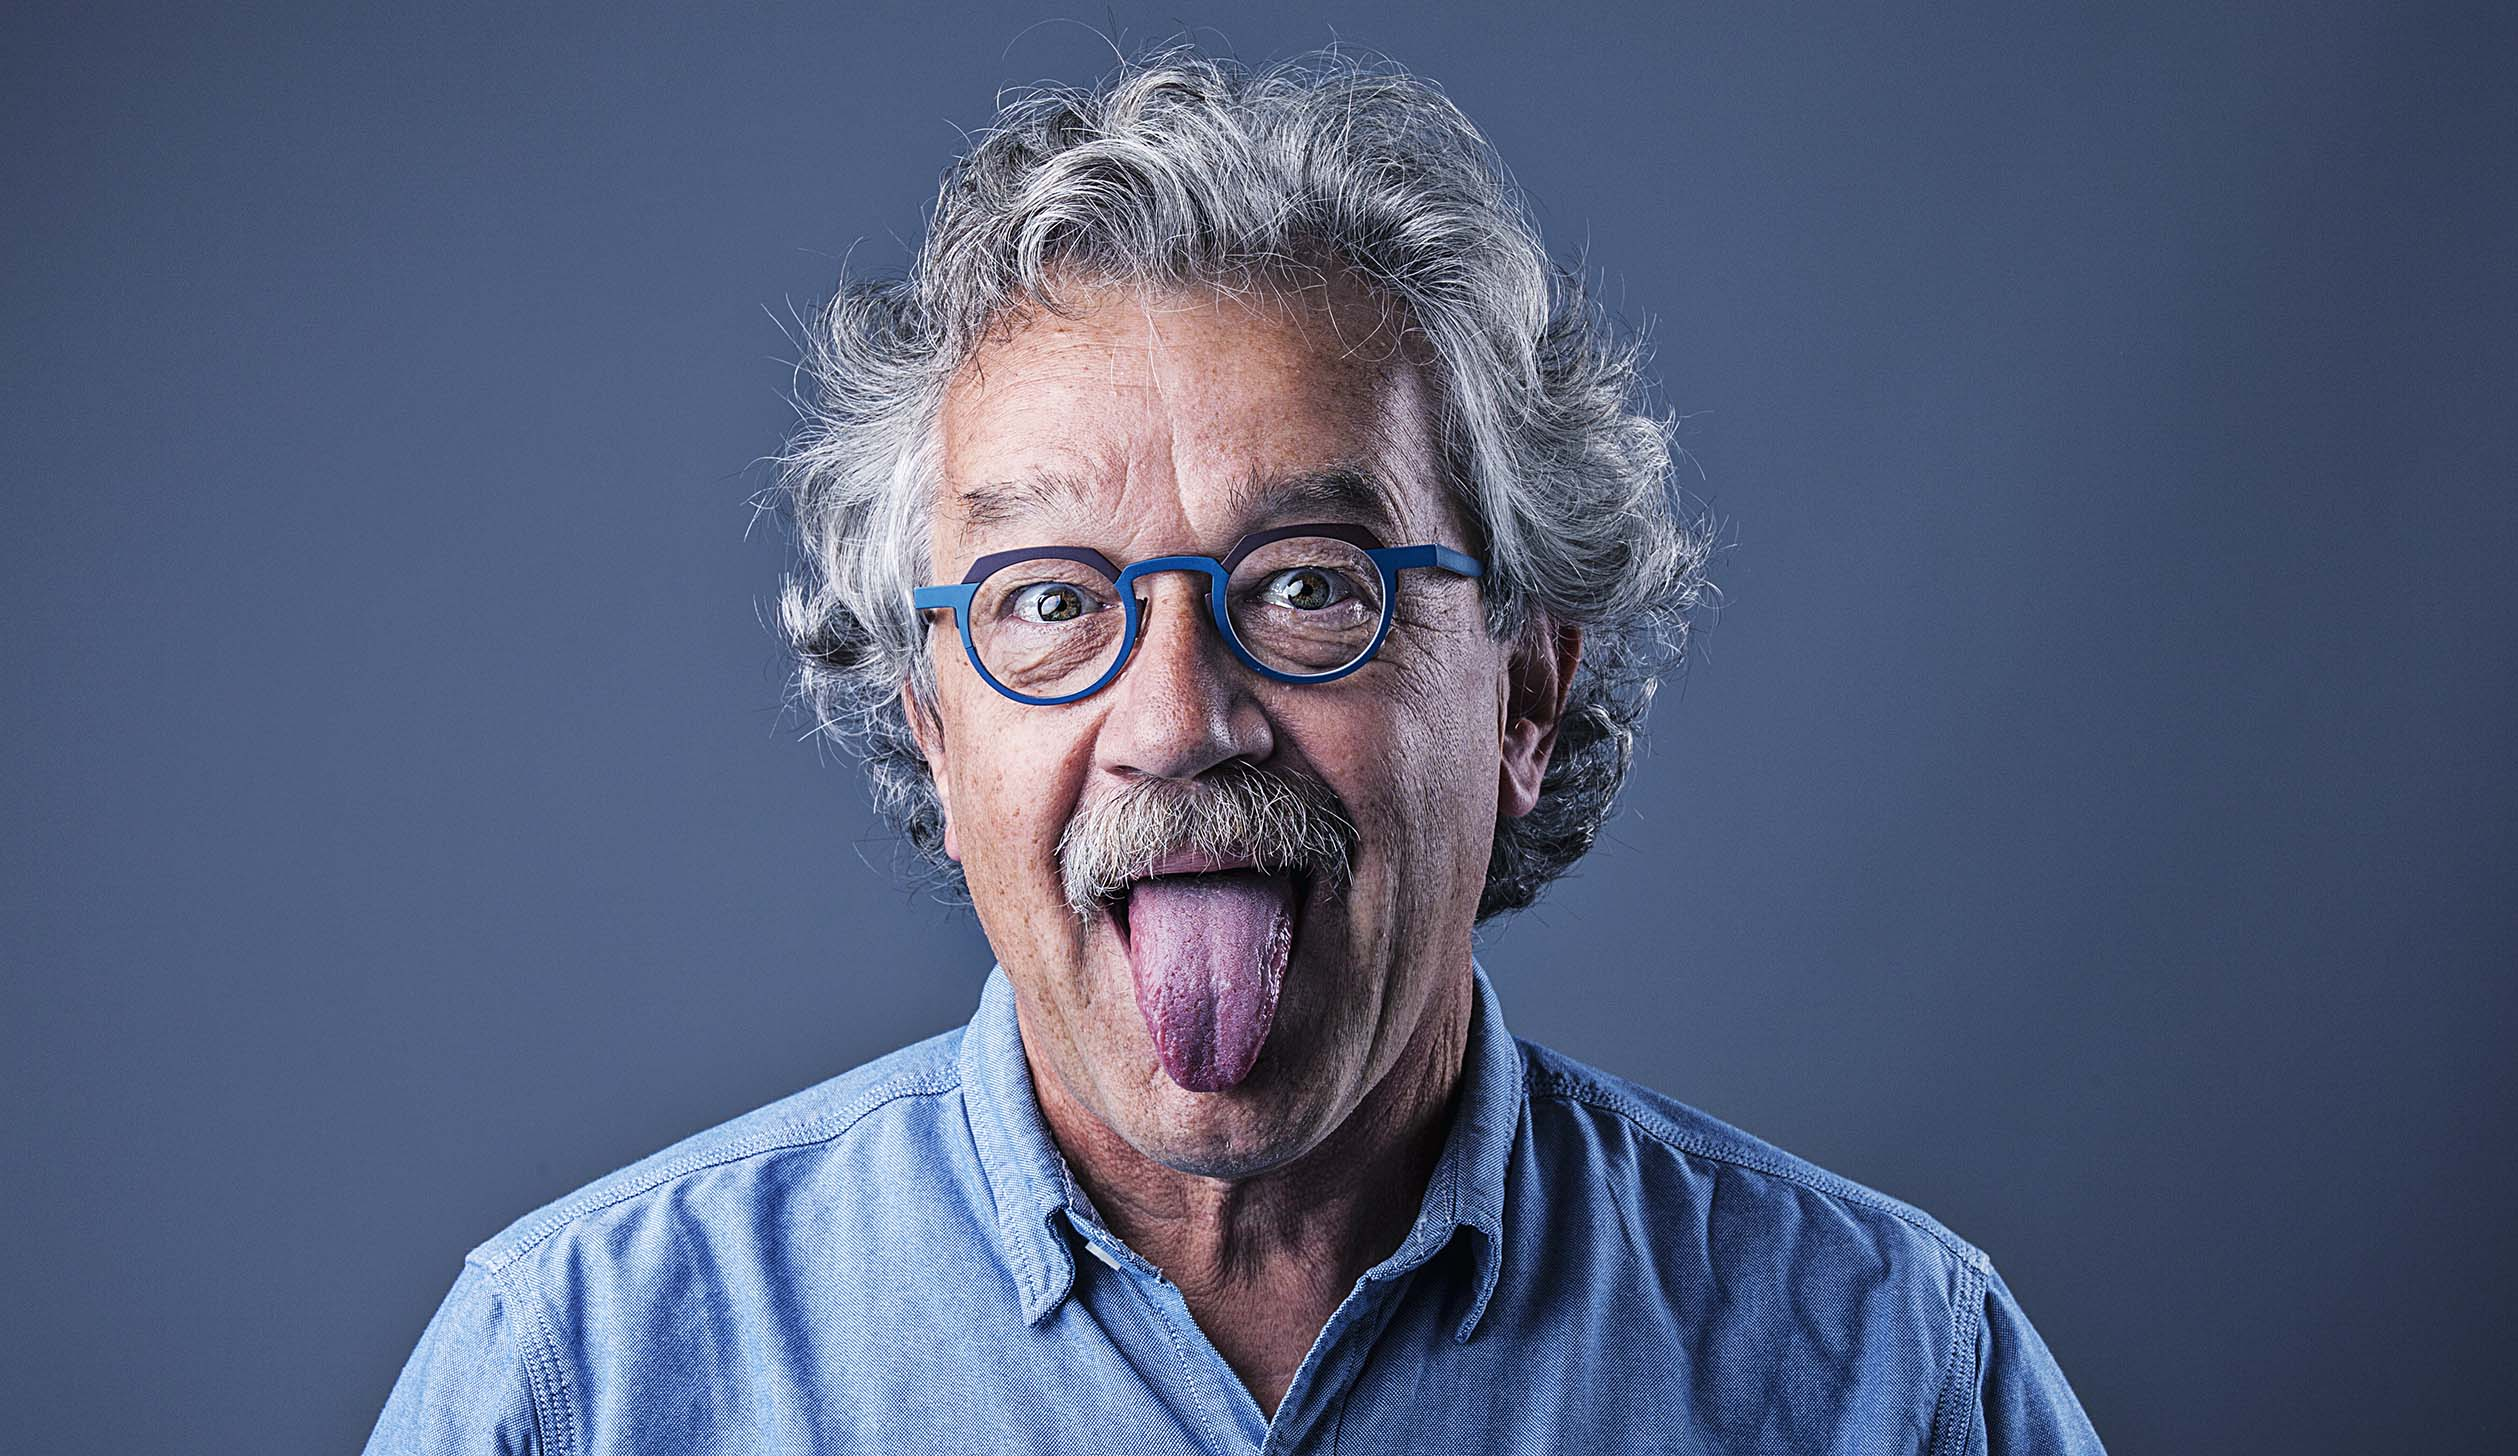 Commercial Portrait Photography of Man Sticking Out Tongue with glasses on in blue denim shirt © Paul Worpole Photography